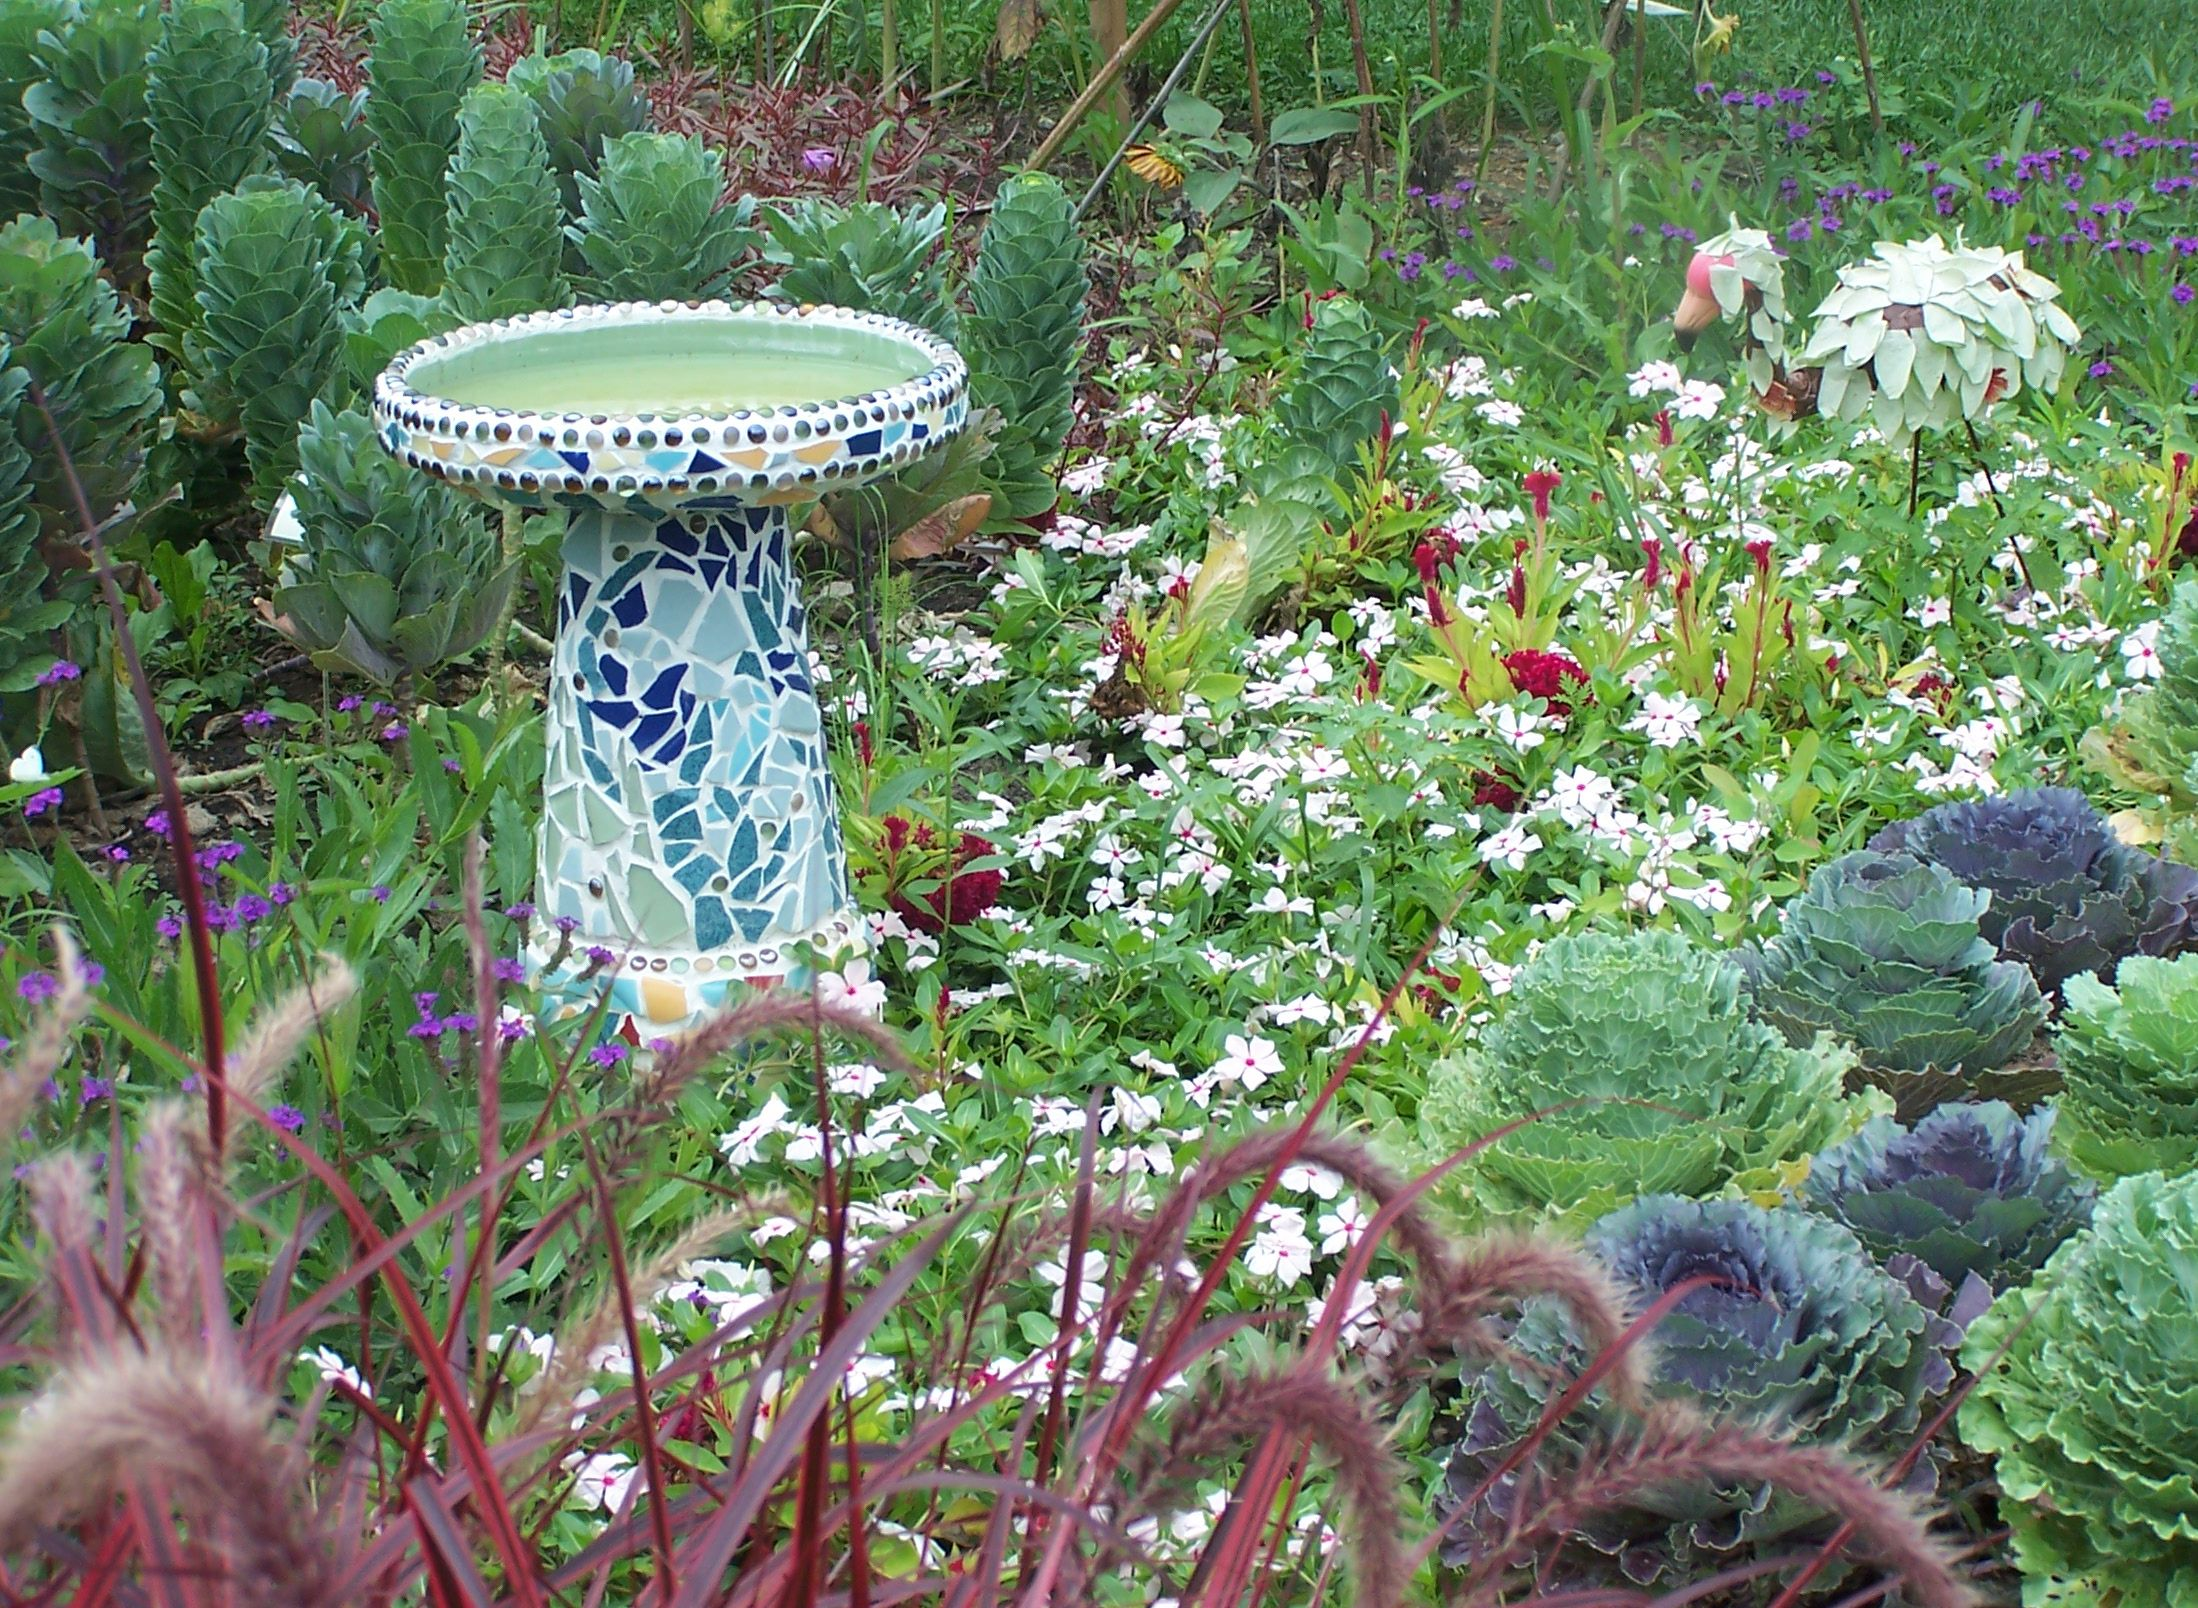 1000 images about Garden Bird Baths on Pinterest Gardens Birds